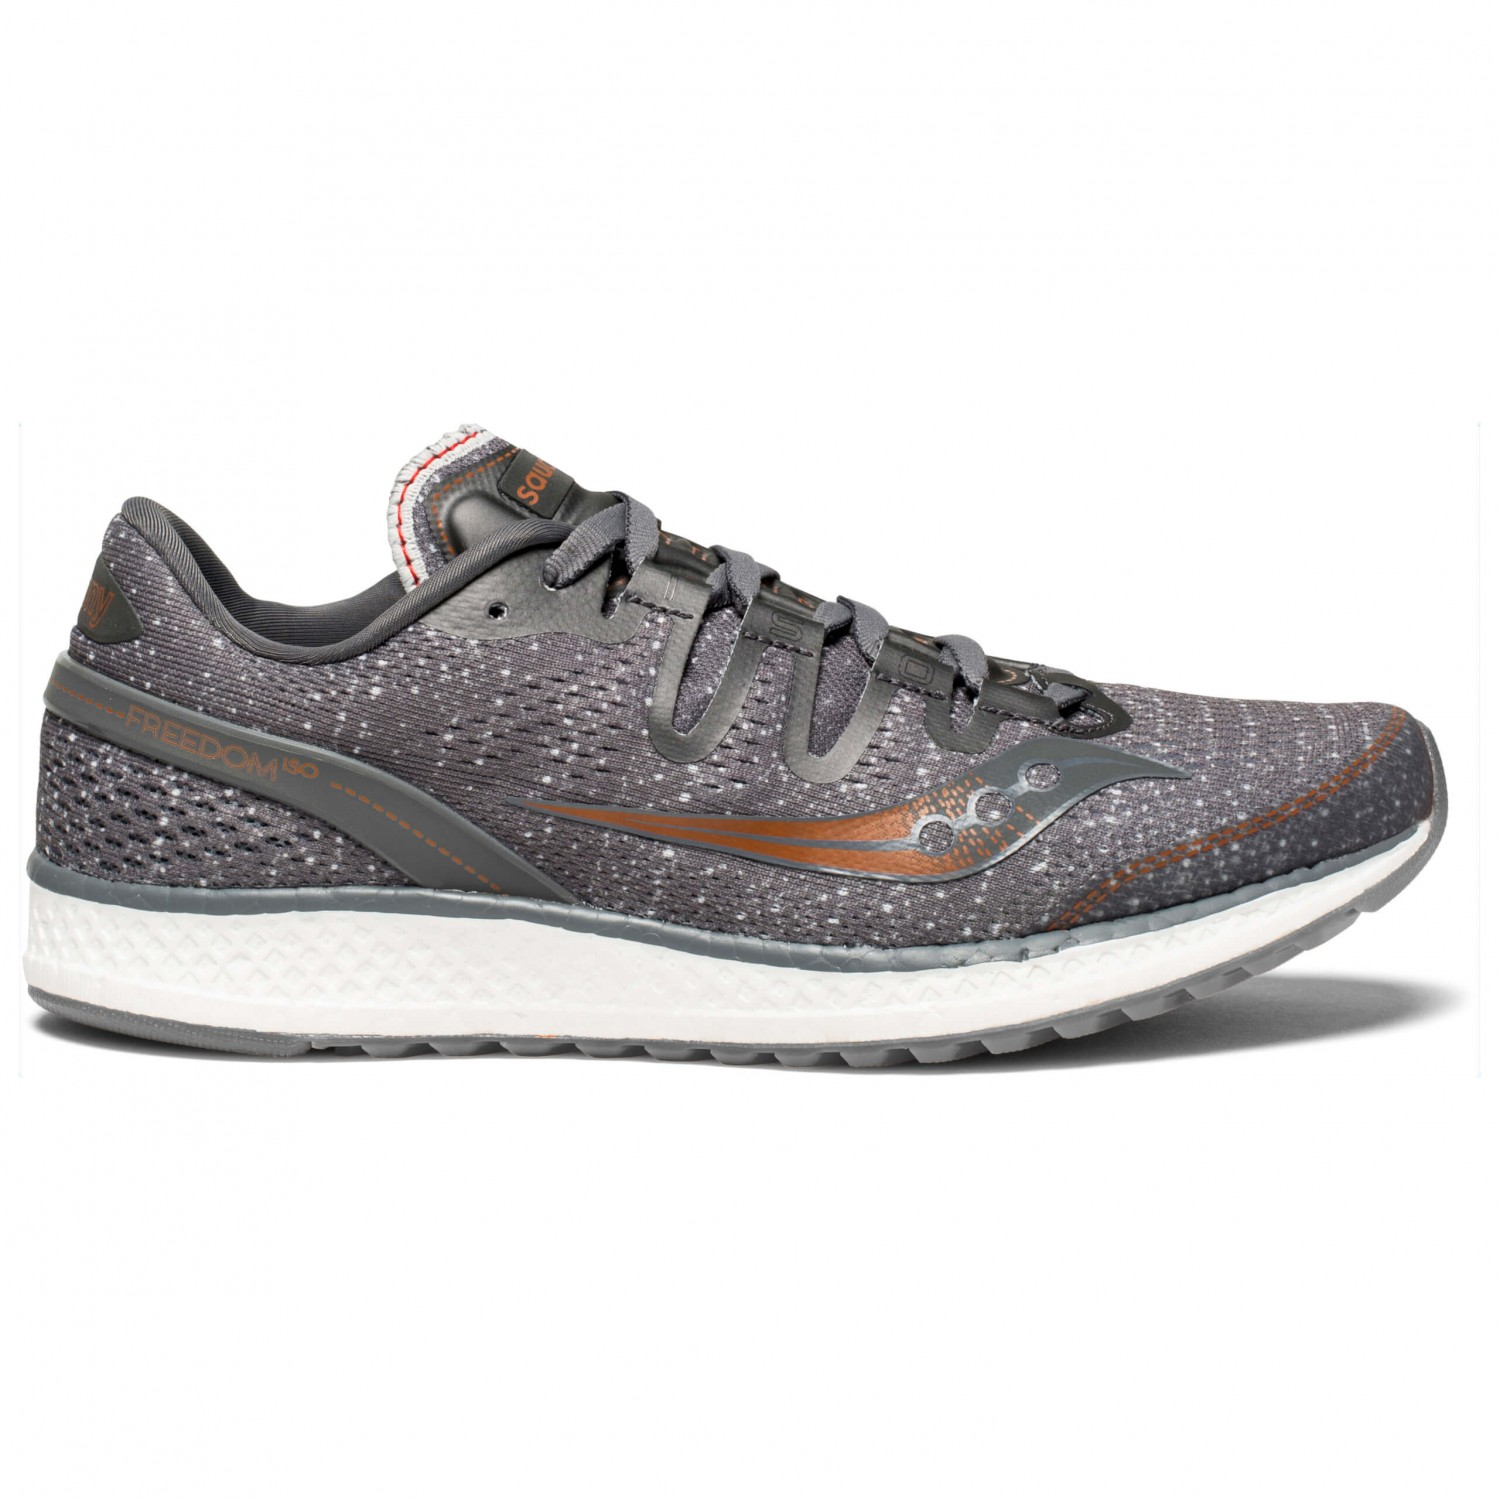 75ab8604fe Saucony - Women's Freedom Iso - Running shoes - Grey / Denim / Copper | 6,5  (US)